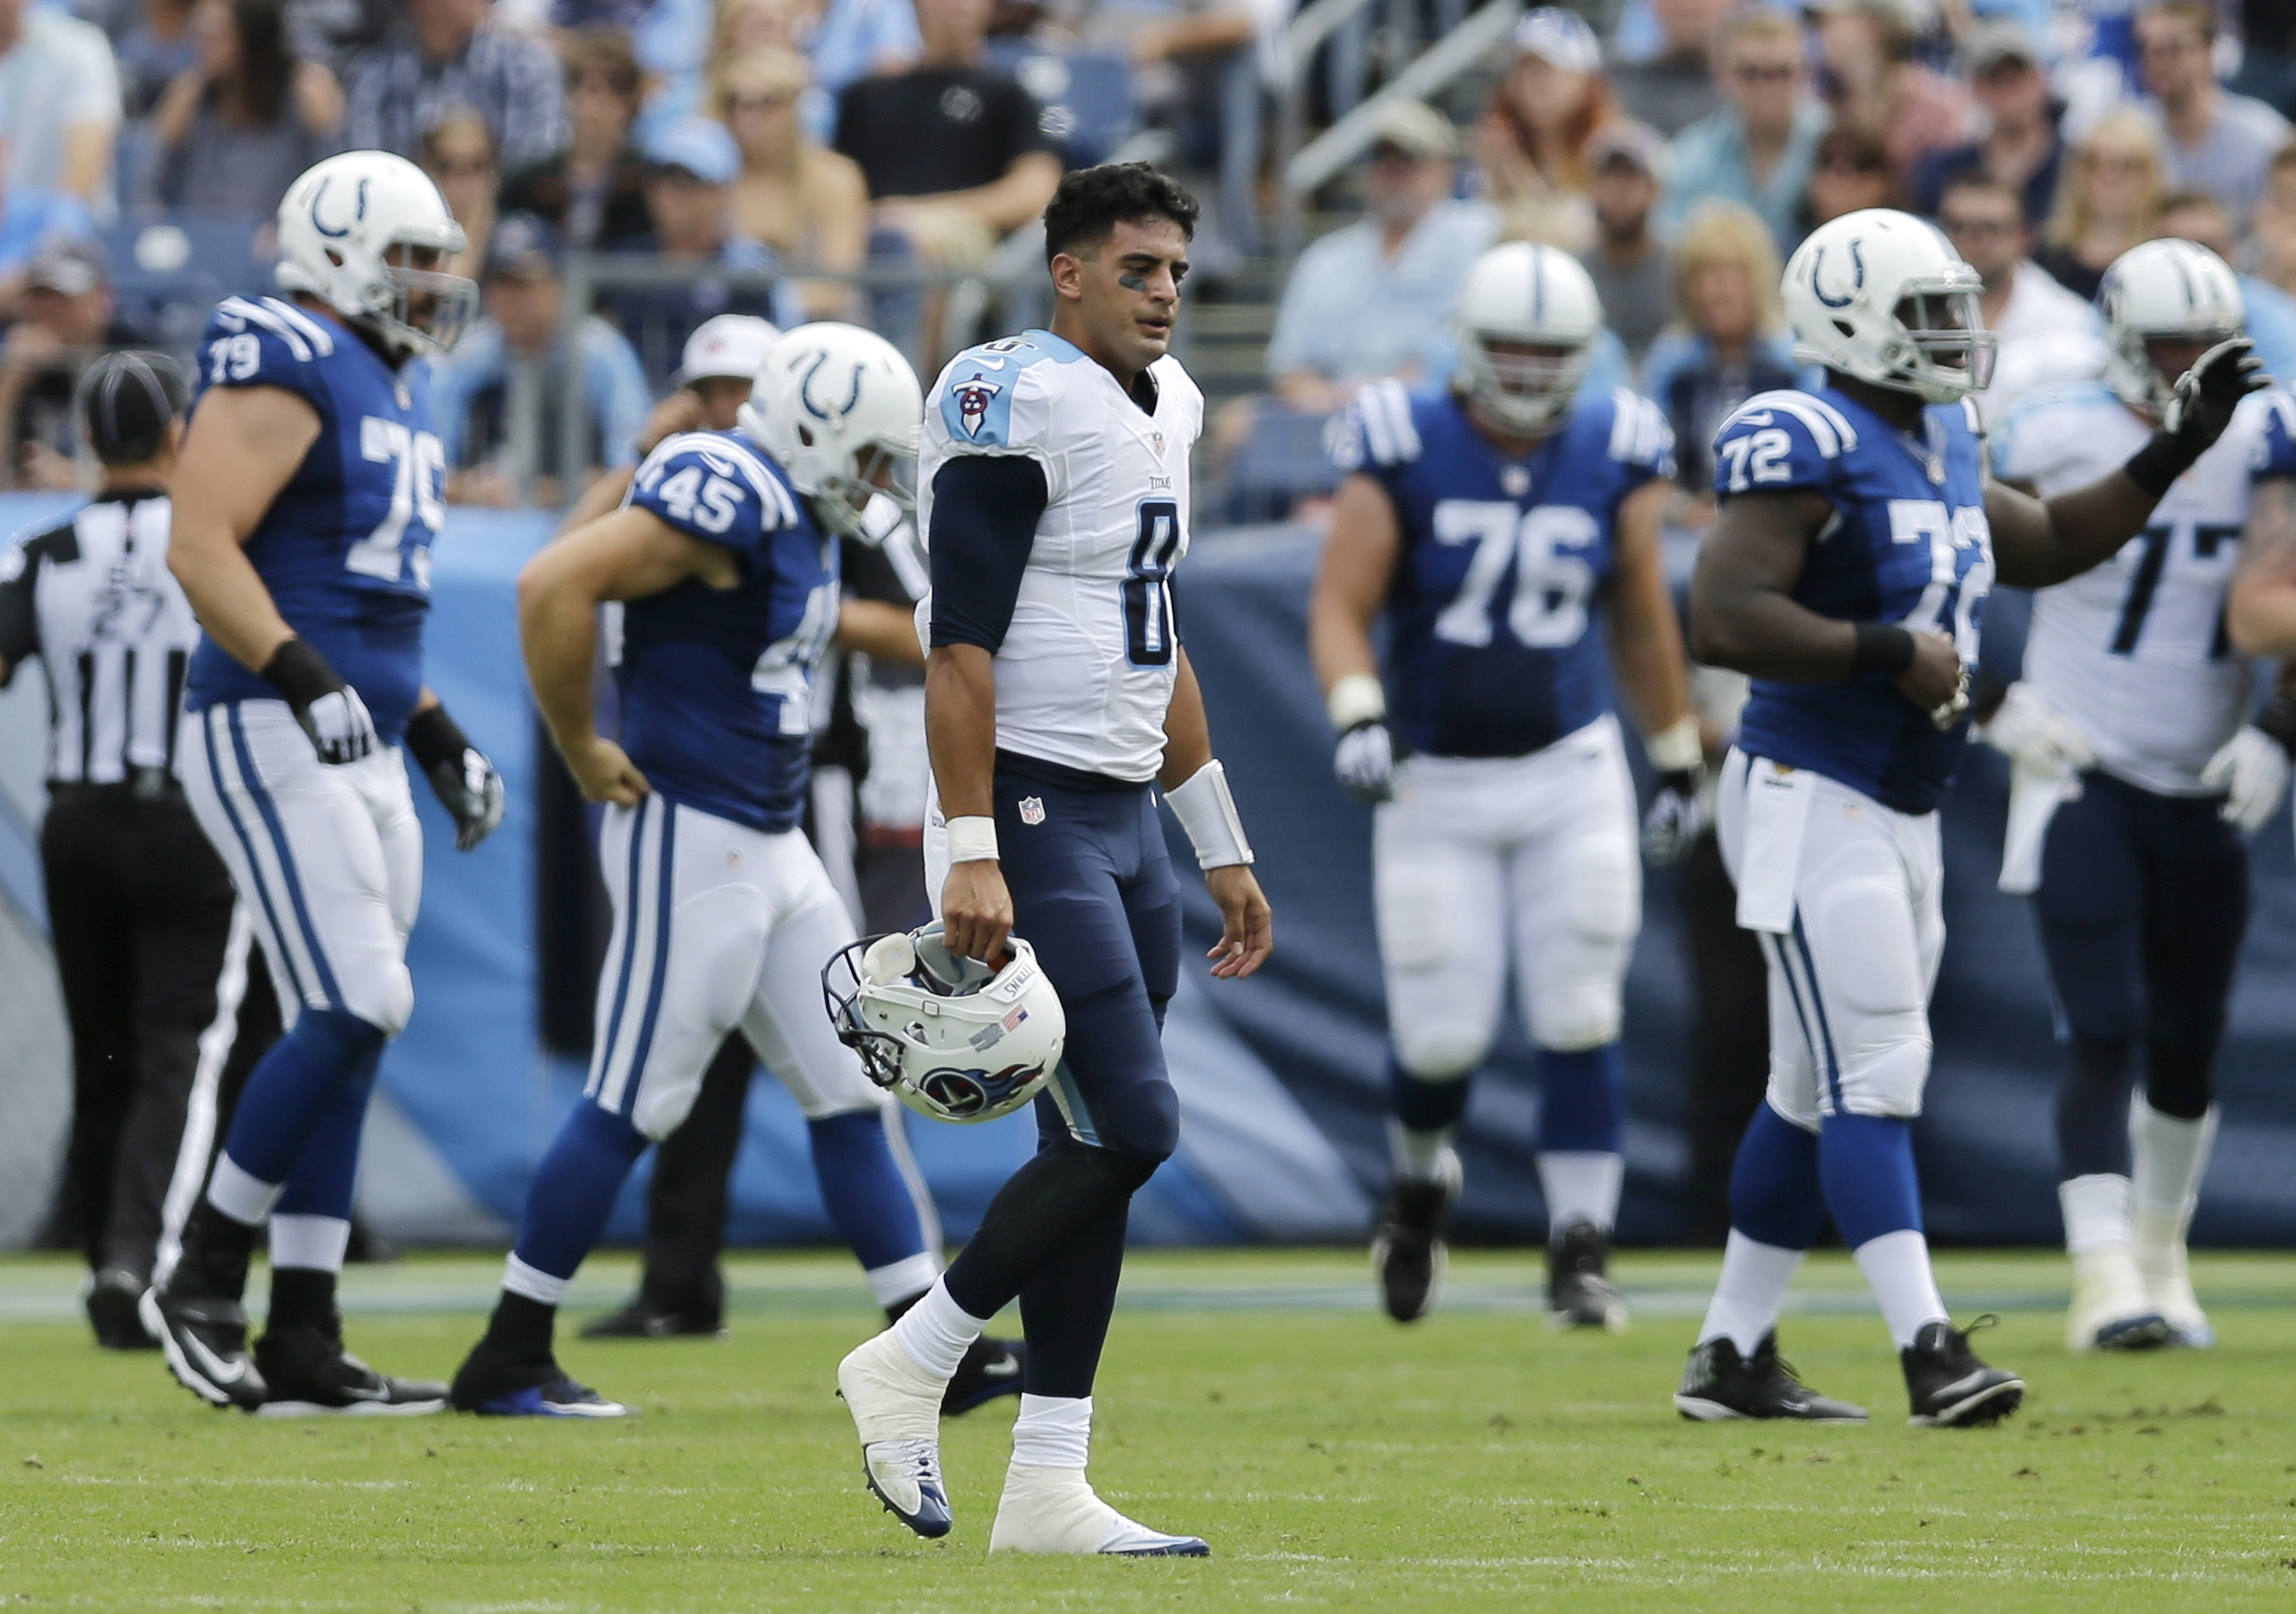 FILE - In this Sunday, Sept. 27, 2015 file photo, Tennessee Titans quarterback Marcus Mariota (8) walks off the field after Indianapolis Colts safety Dwight Lowery intercepted a pass and returned it 69 yards for a touchdown in the first half of an NFL foo